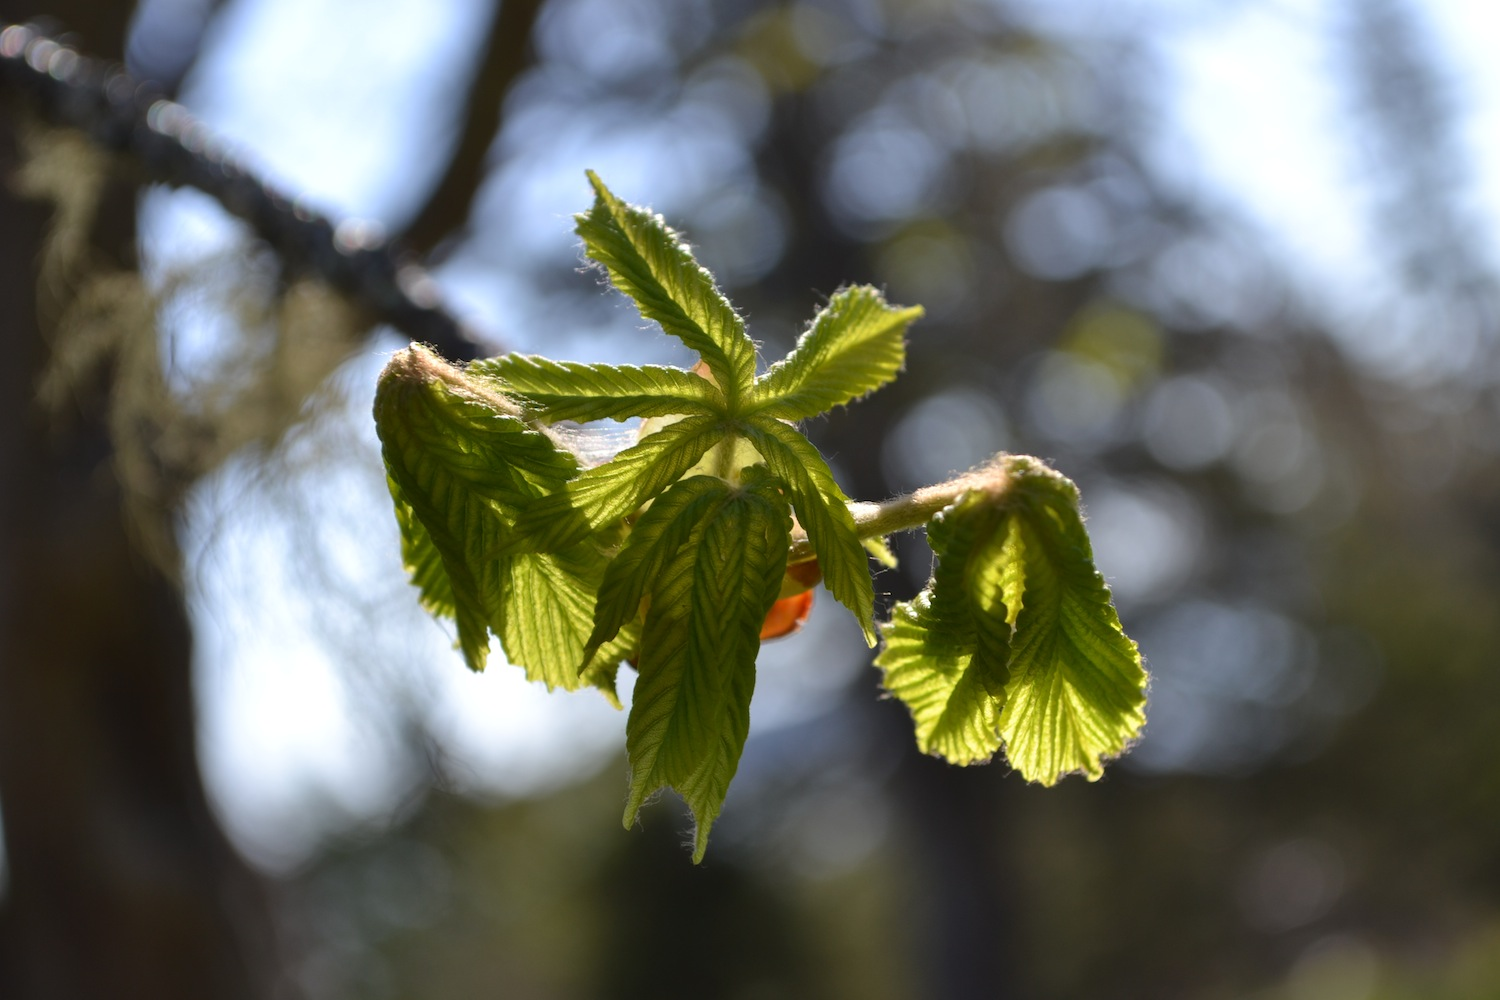 Newly broken leaves on the Horse chestnut. Taken May 15, 2015